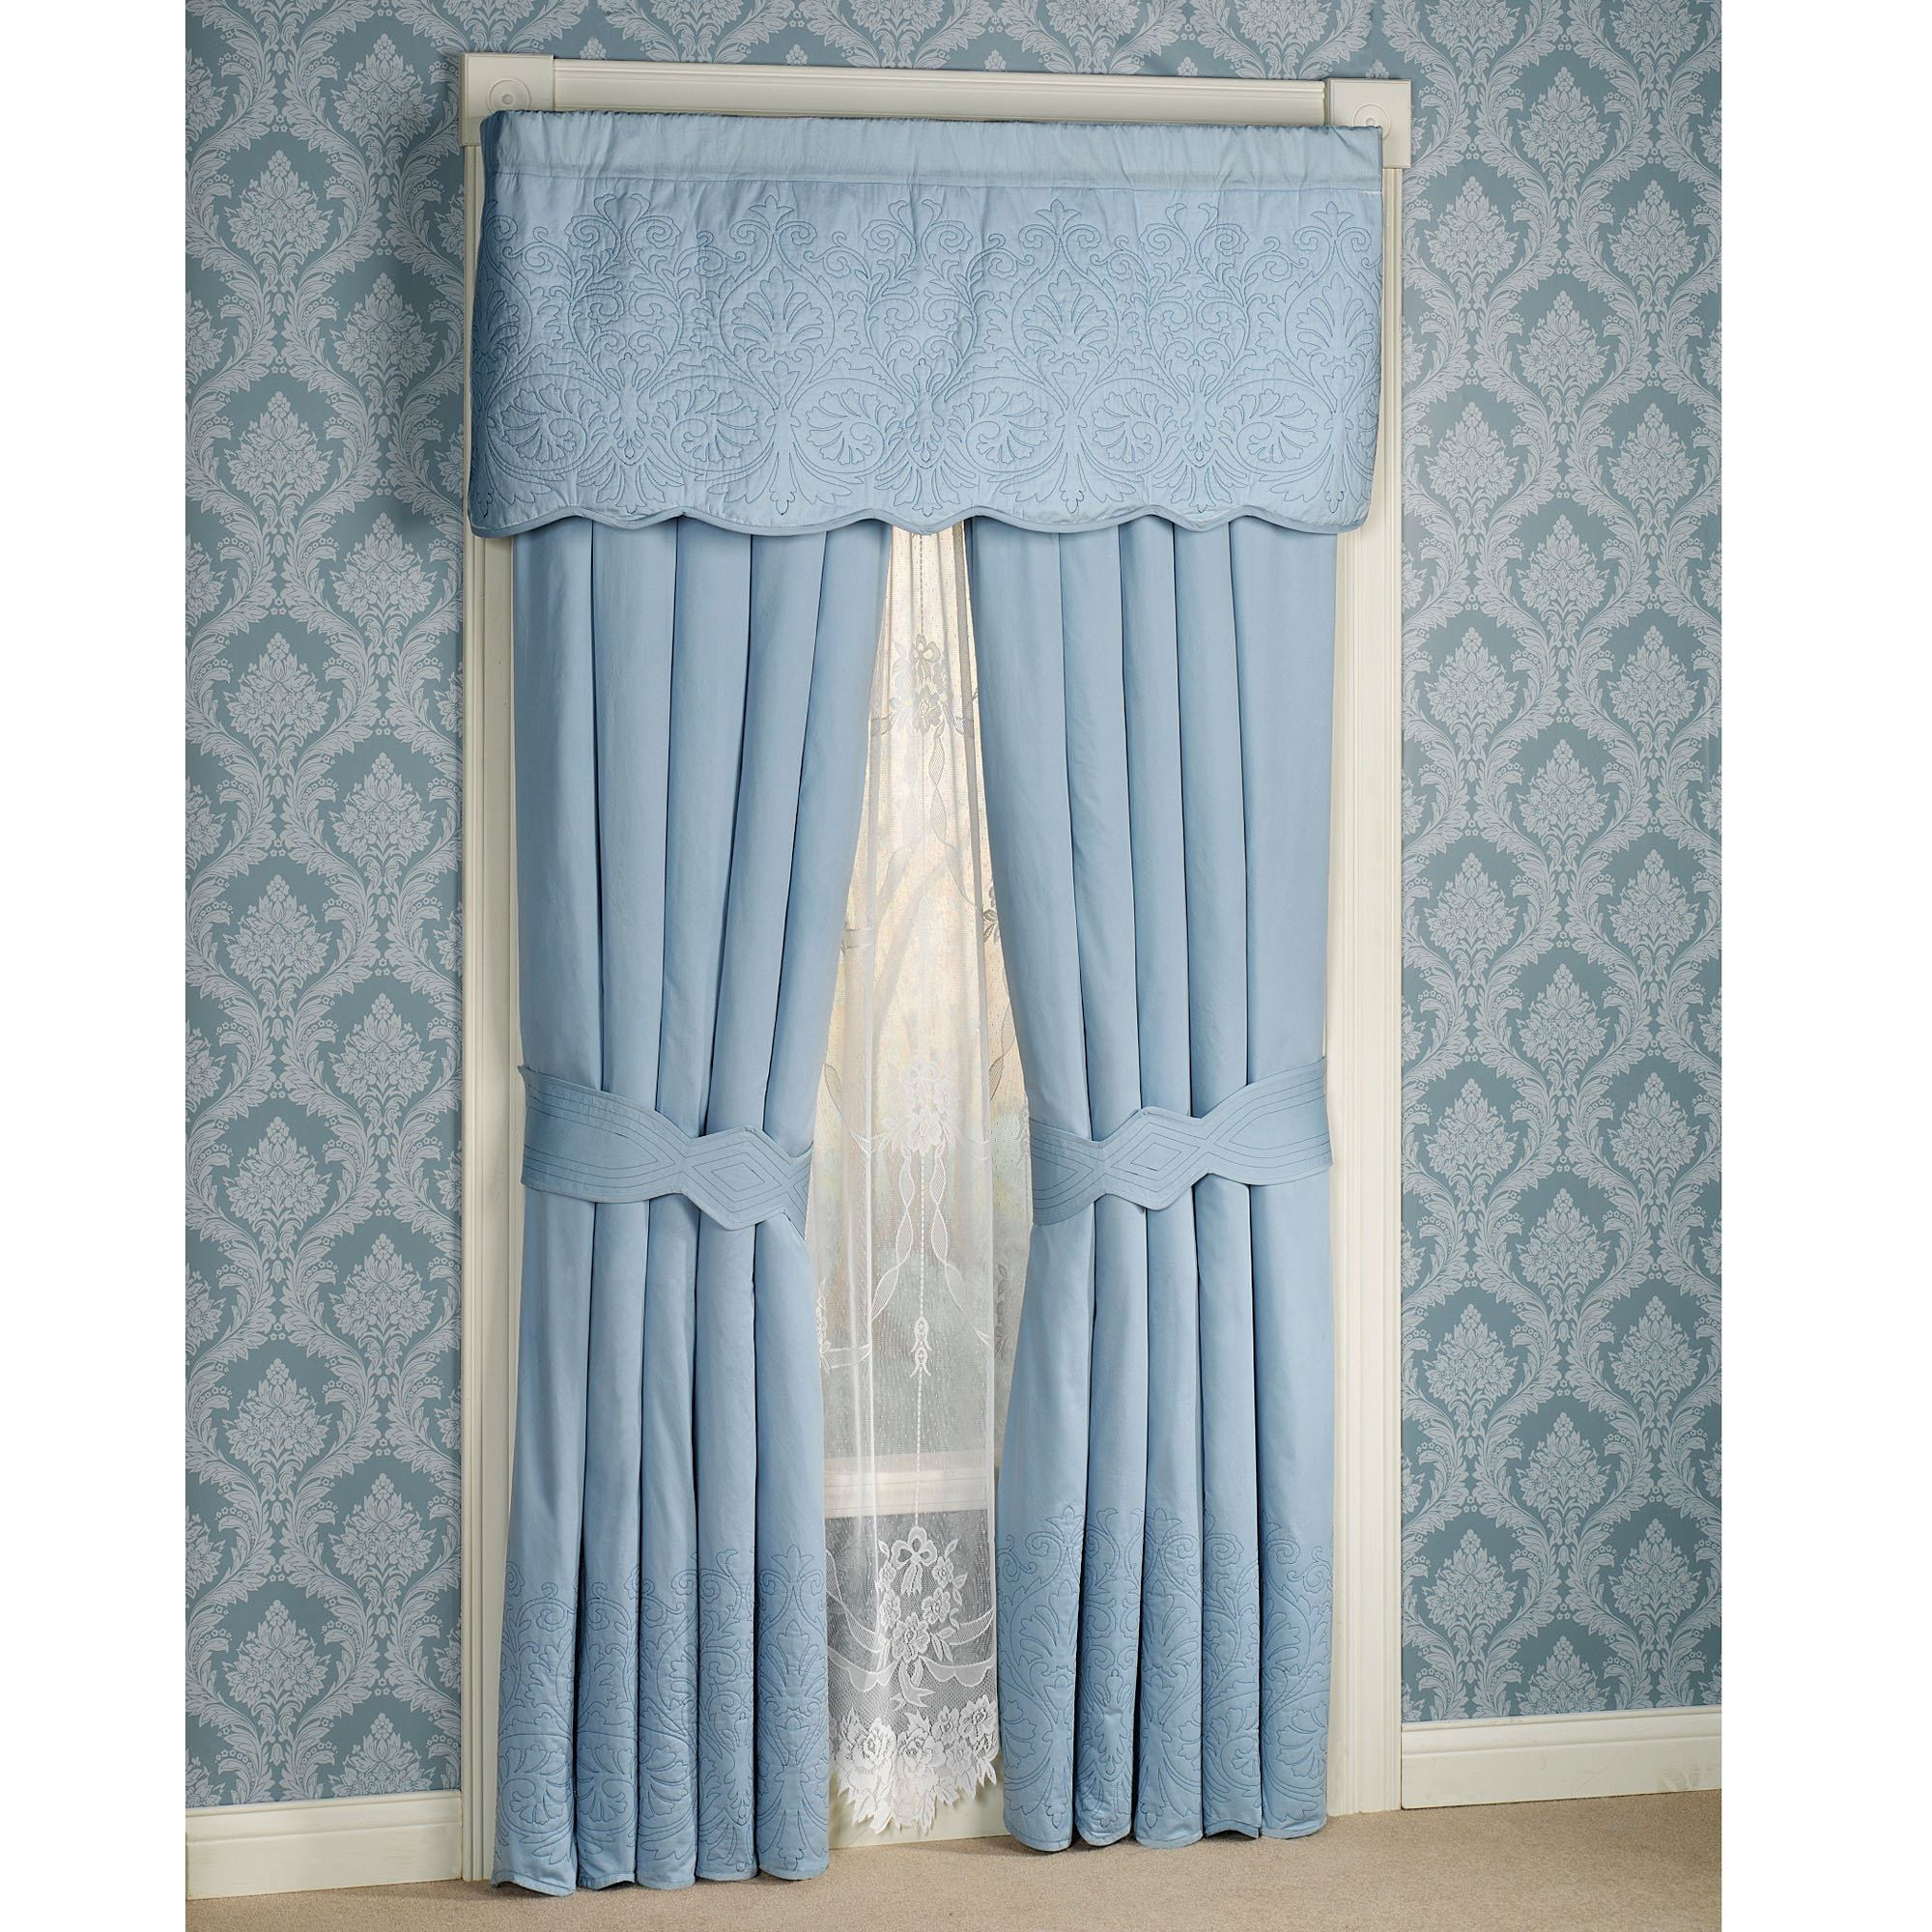 Evermore Blue Grande Bedspread Bedding